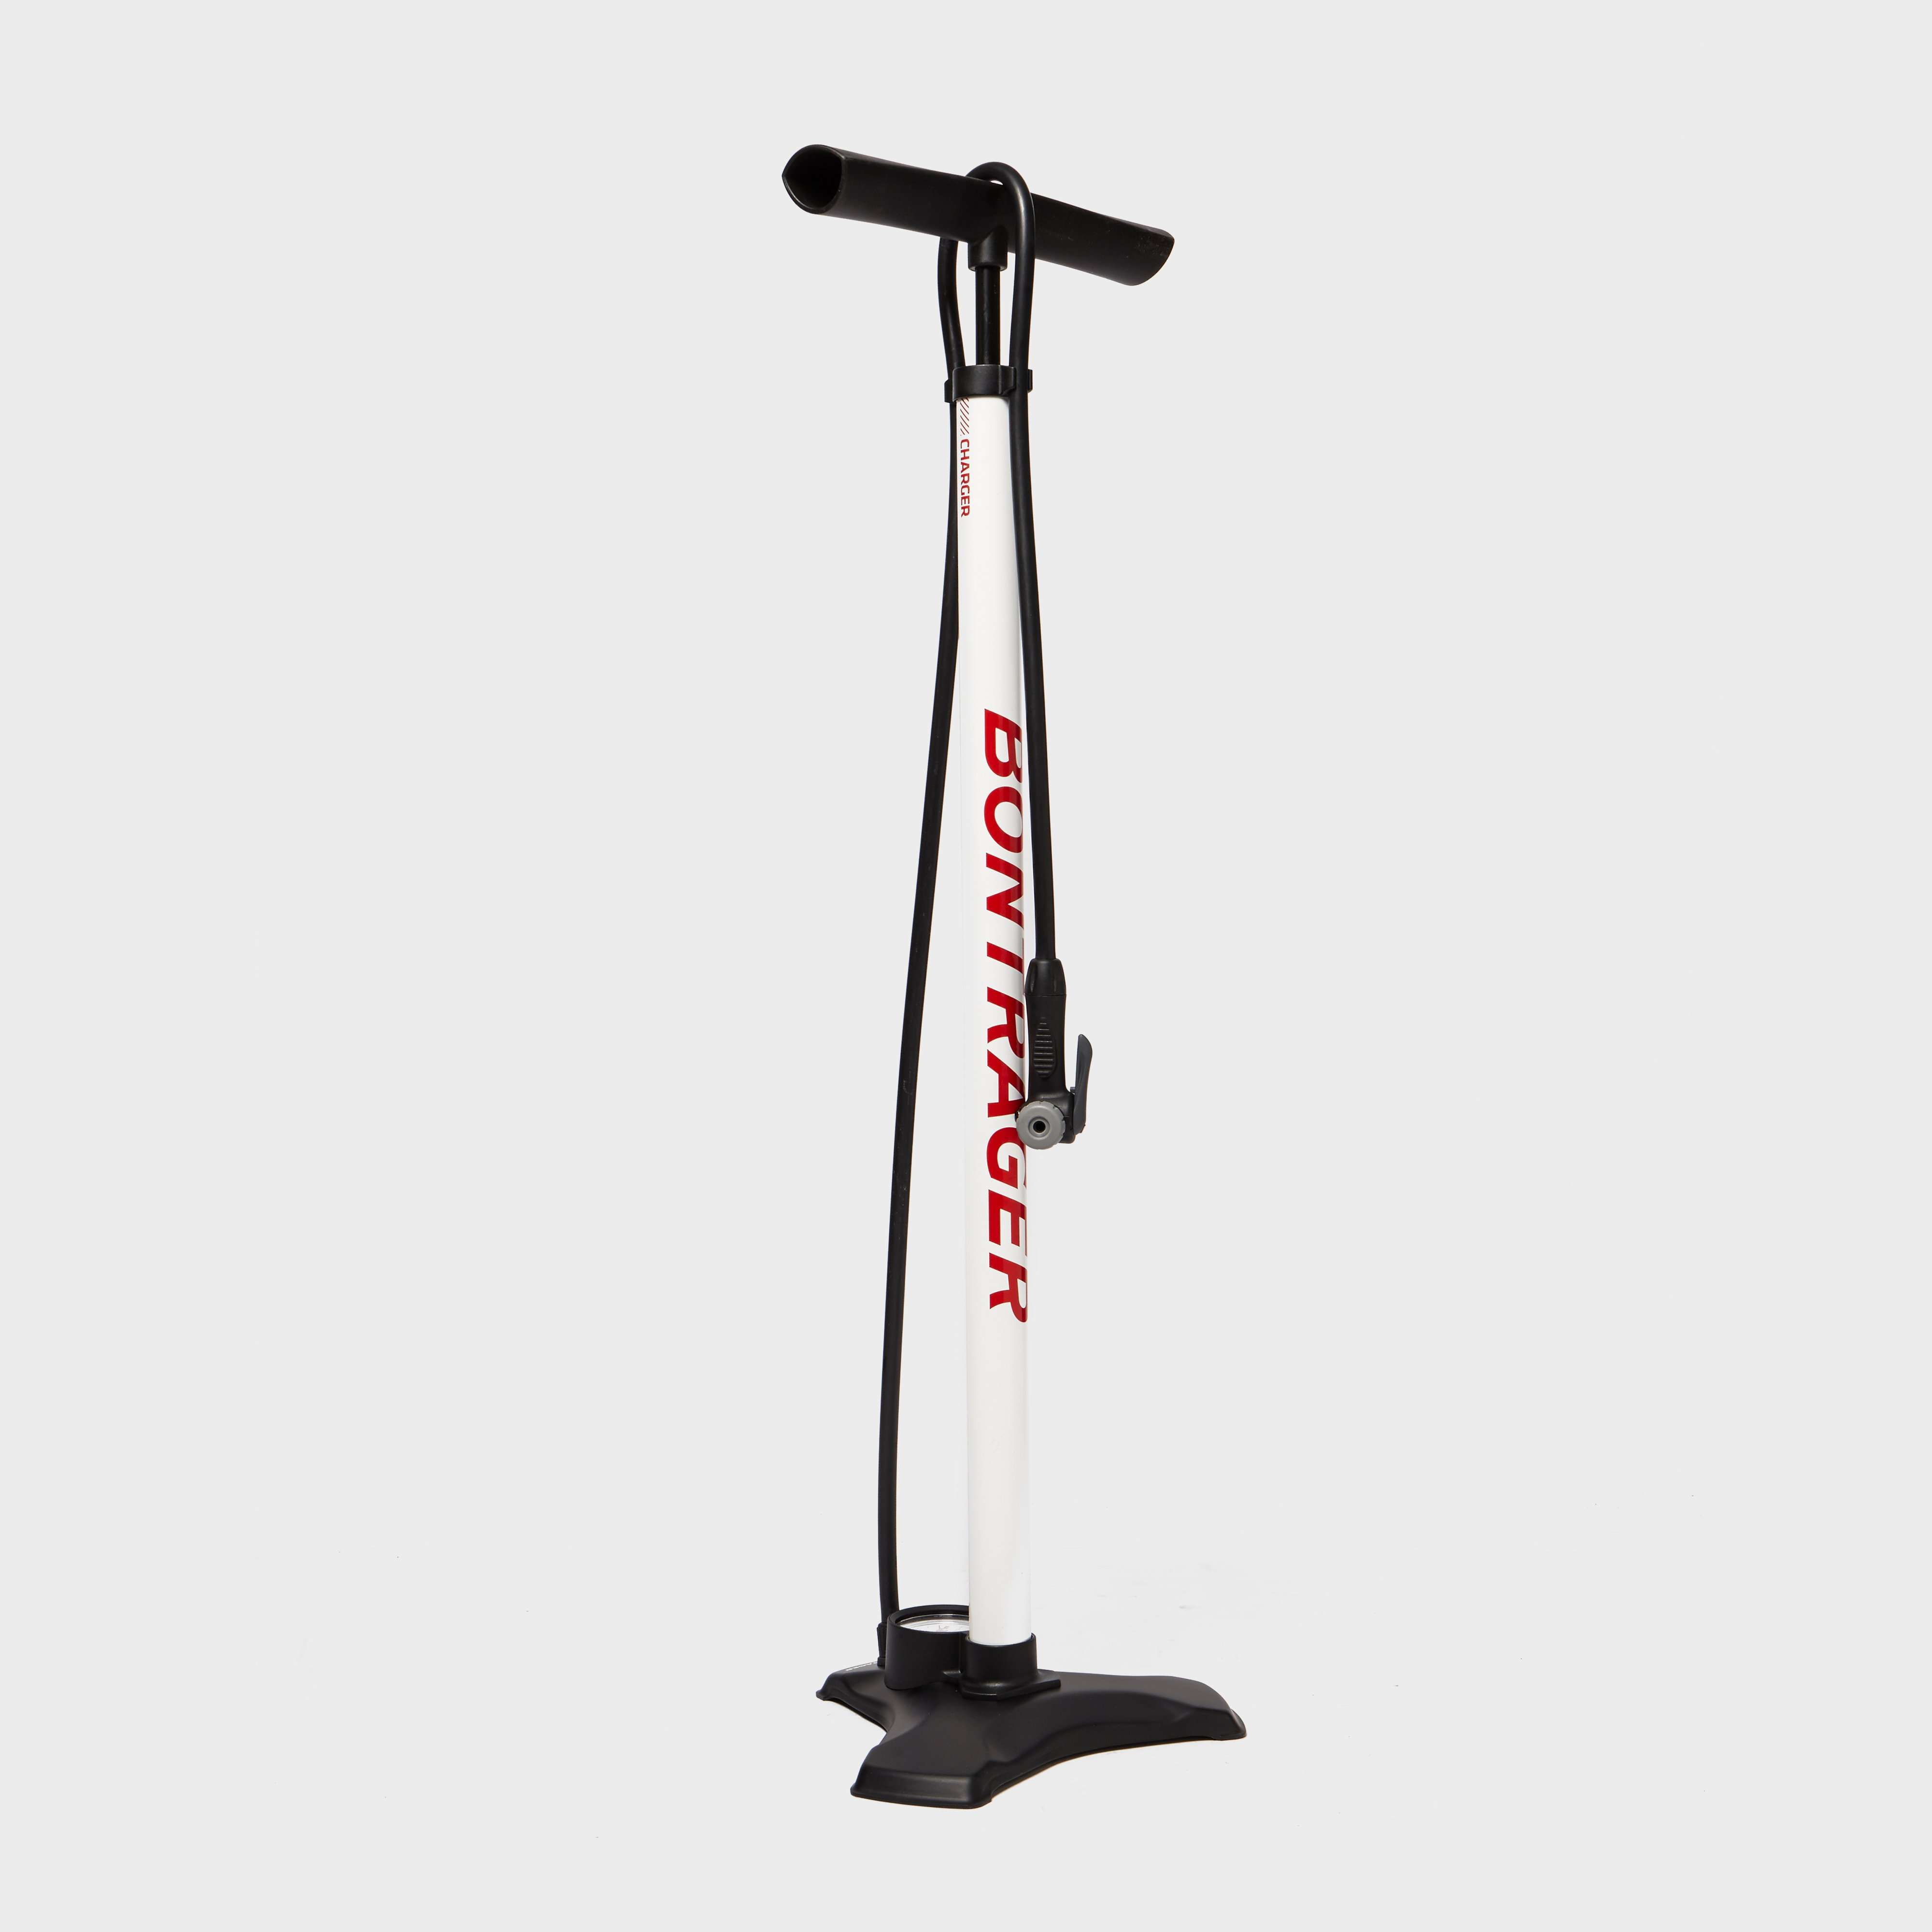 BONTRAGER Pump Charger Tall Euro